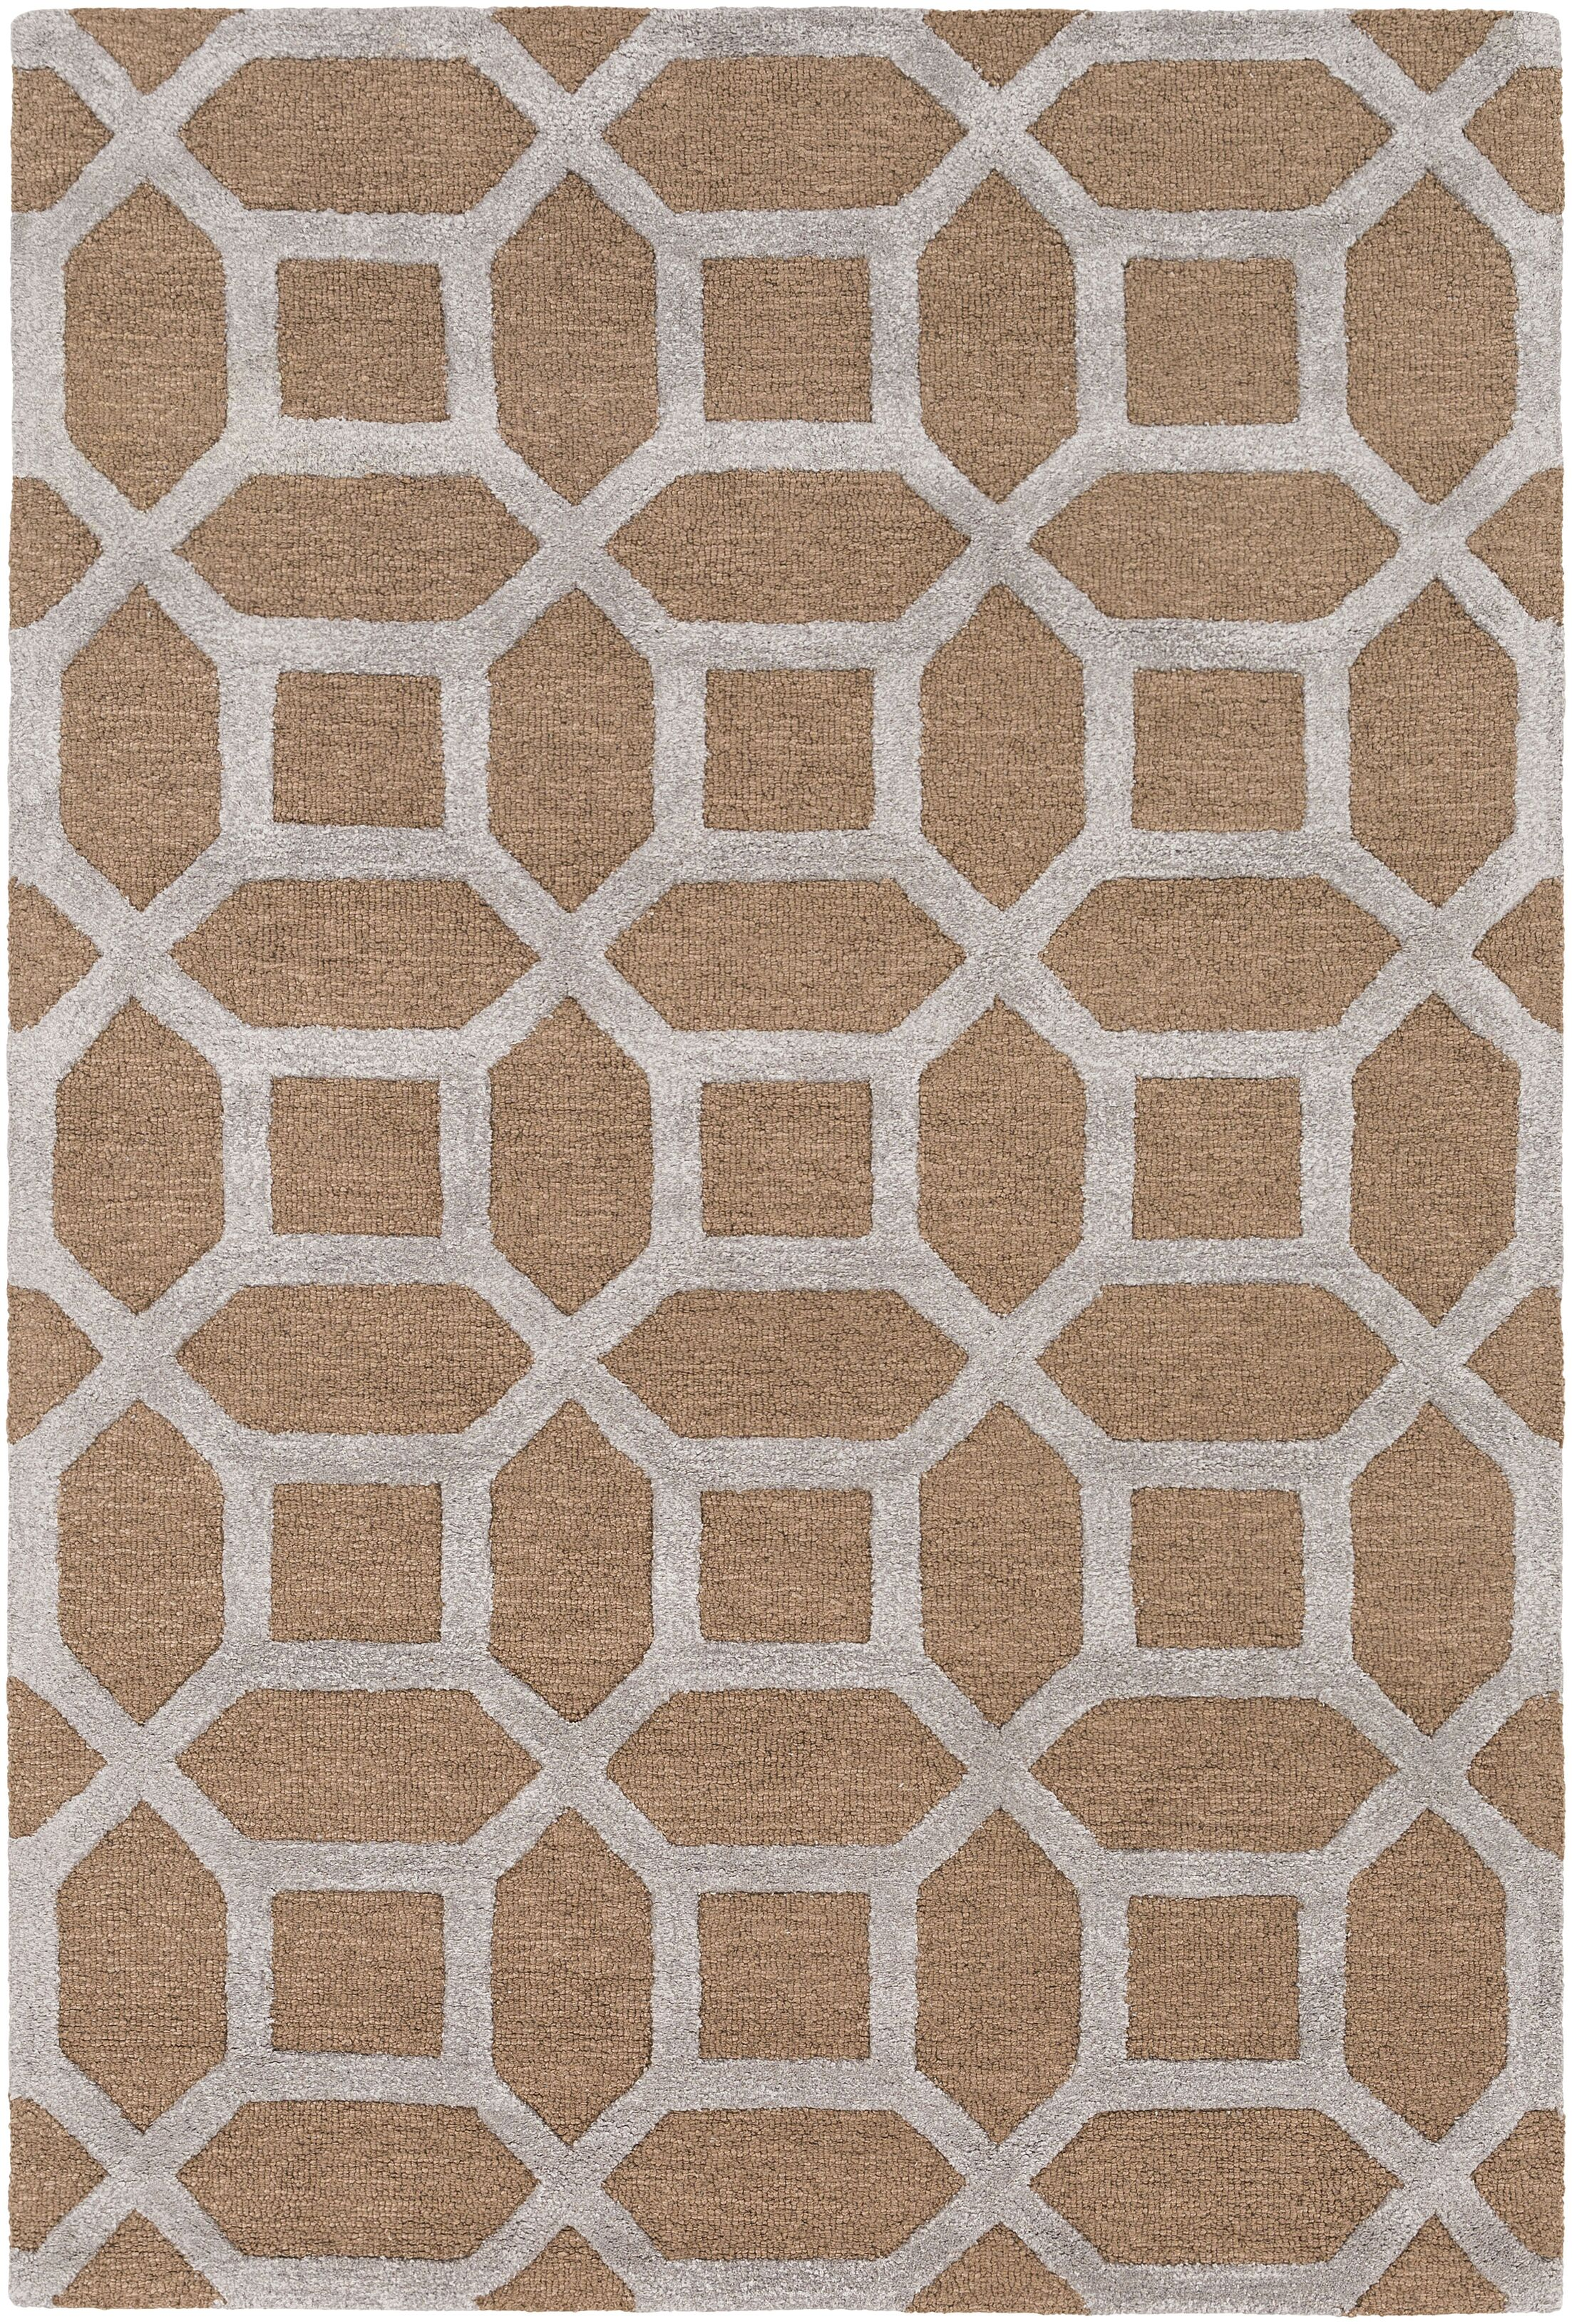 Wyble Hand-Tufted Tan Area Rug Rug Size: Rectangle 5' x 7'6